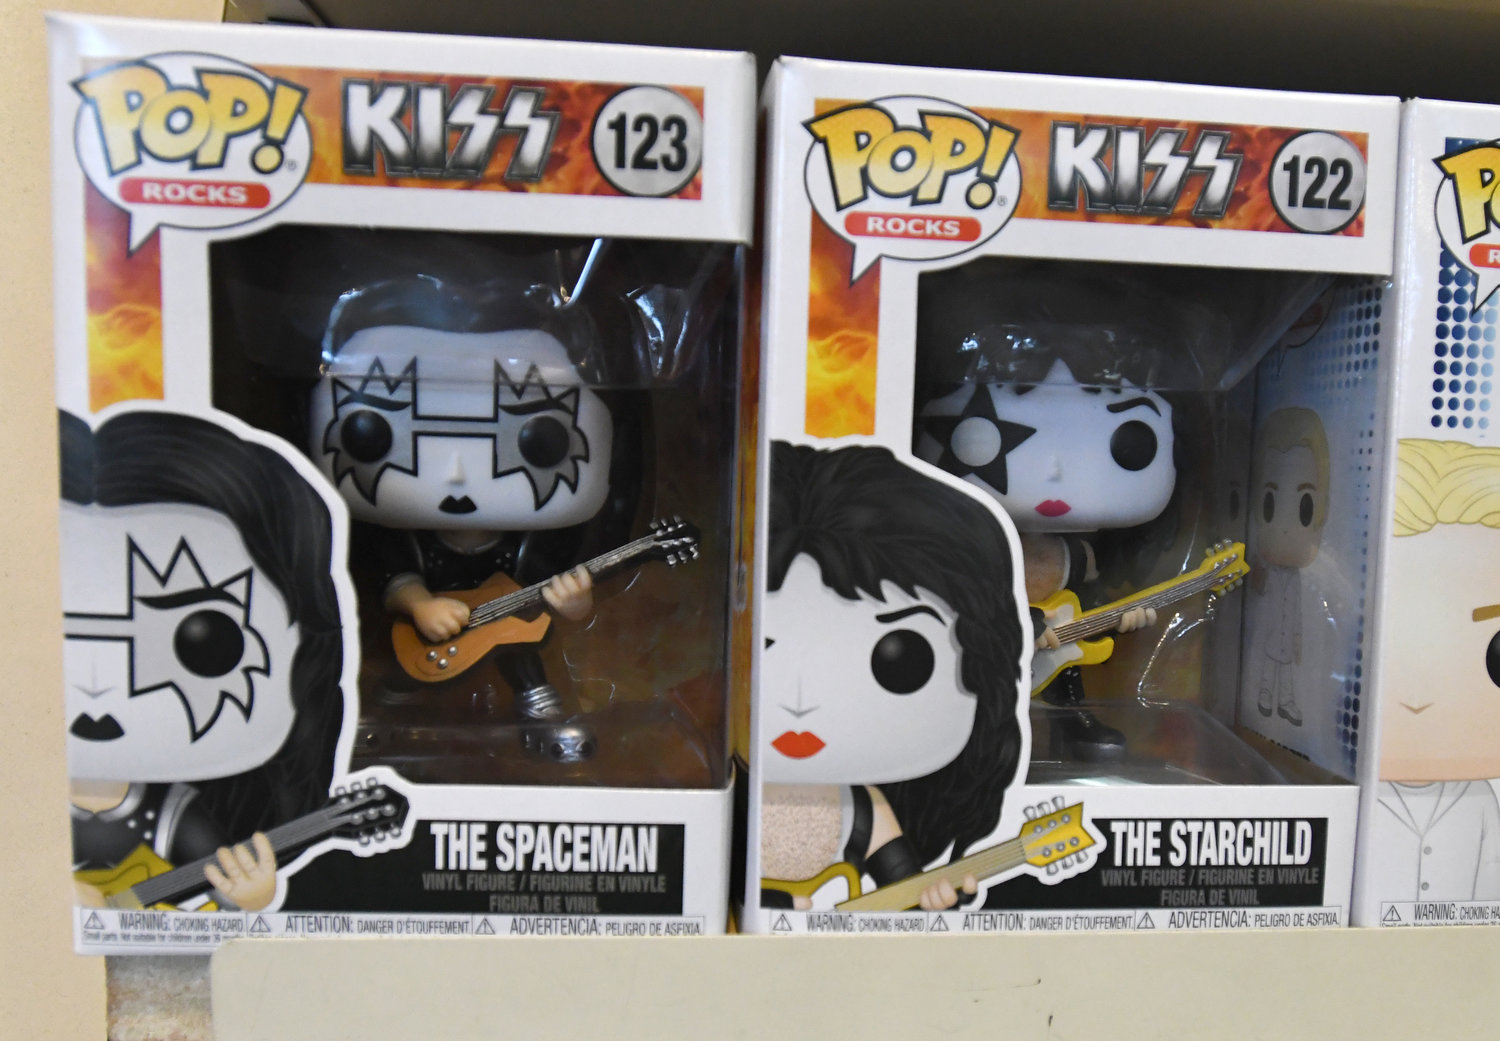 GIVE THEM A KISS — These Funko figurines are very popular with collectors because they feature characters from comics, movies, music, television, literature and more. These KISS figurines are only two of the thousands available at The 4th Wall in New Hartford.